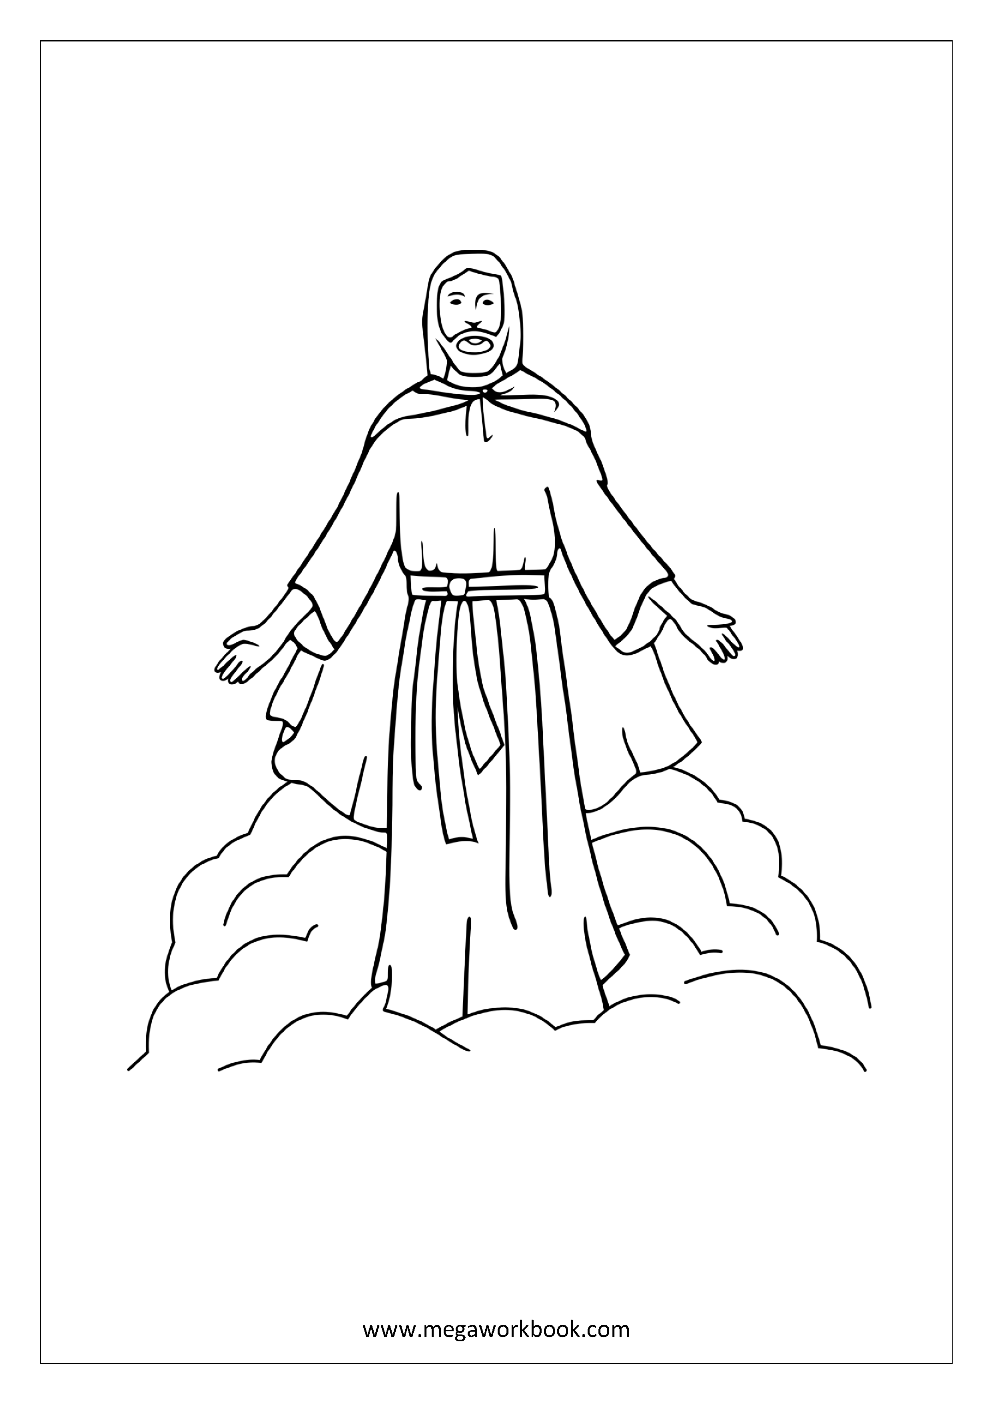 31 Jesus Christ Coloring Pages - Free Printable Coloring Pages